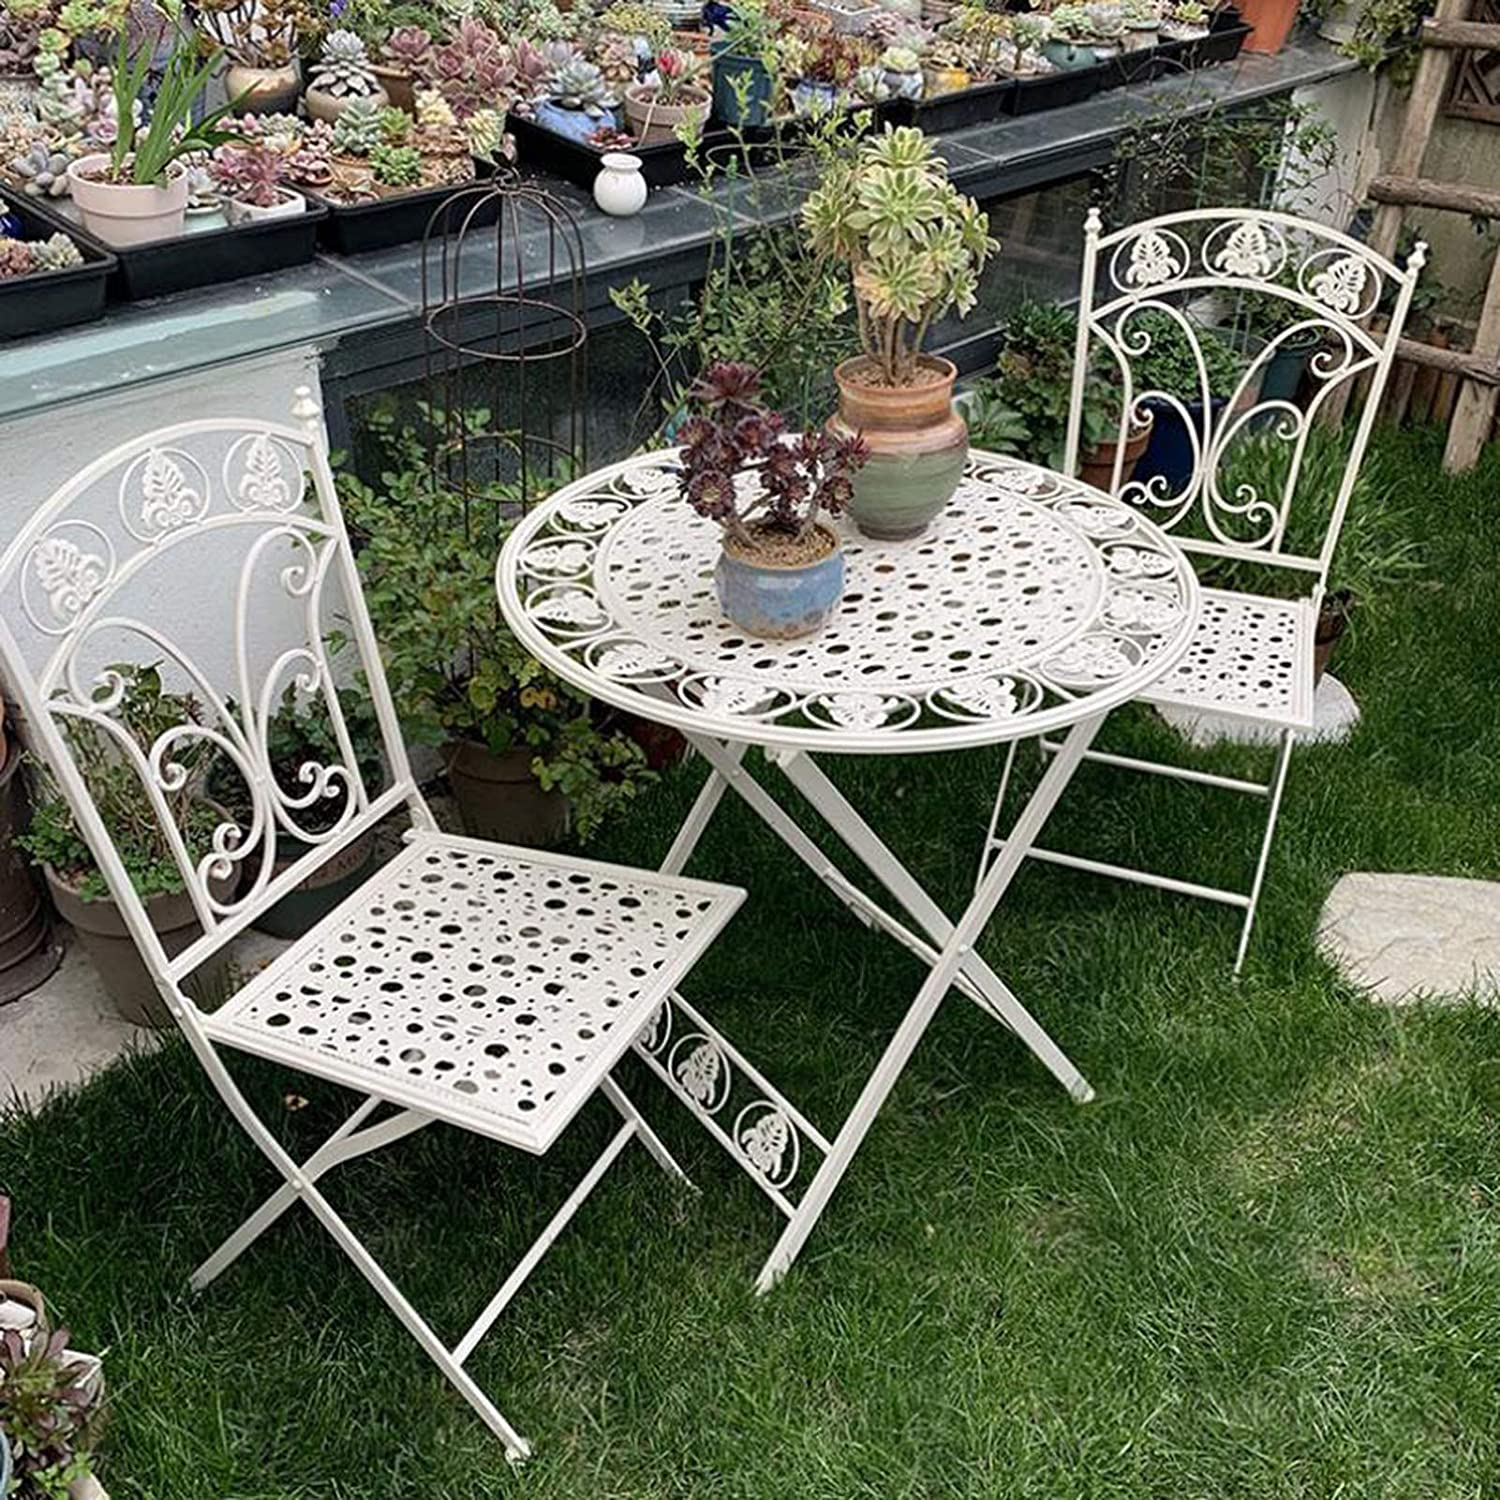 household items 3 Pieces of Garden Patio Furniture Set, Outdoor Folding Tavern Wrought Iron Table and Chairs, 2 armchairs and 1 Metal Table for The Courtyard/Lawn/Backyard Swimming Pool